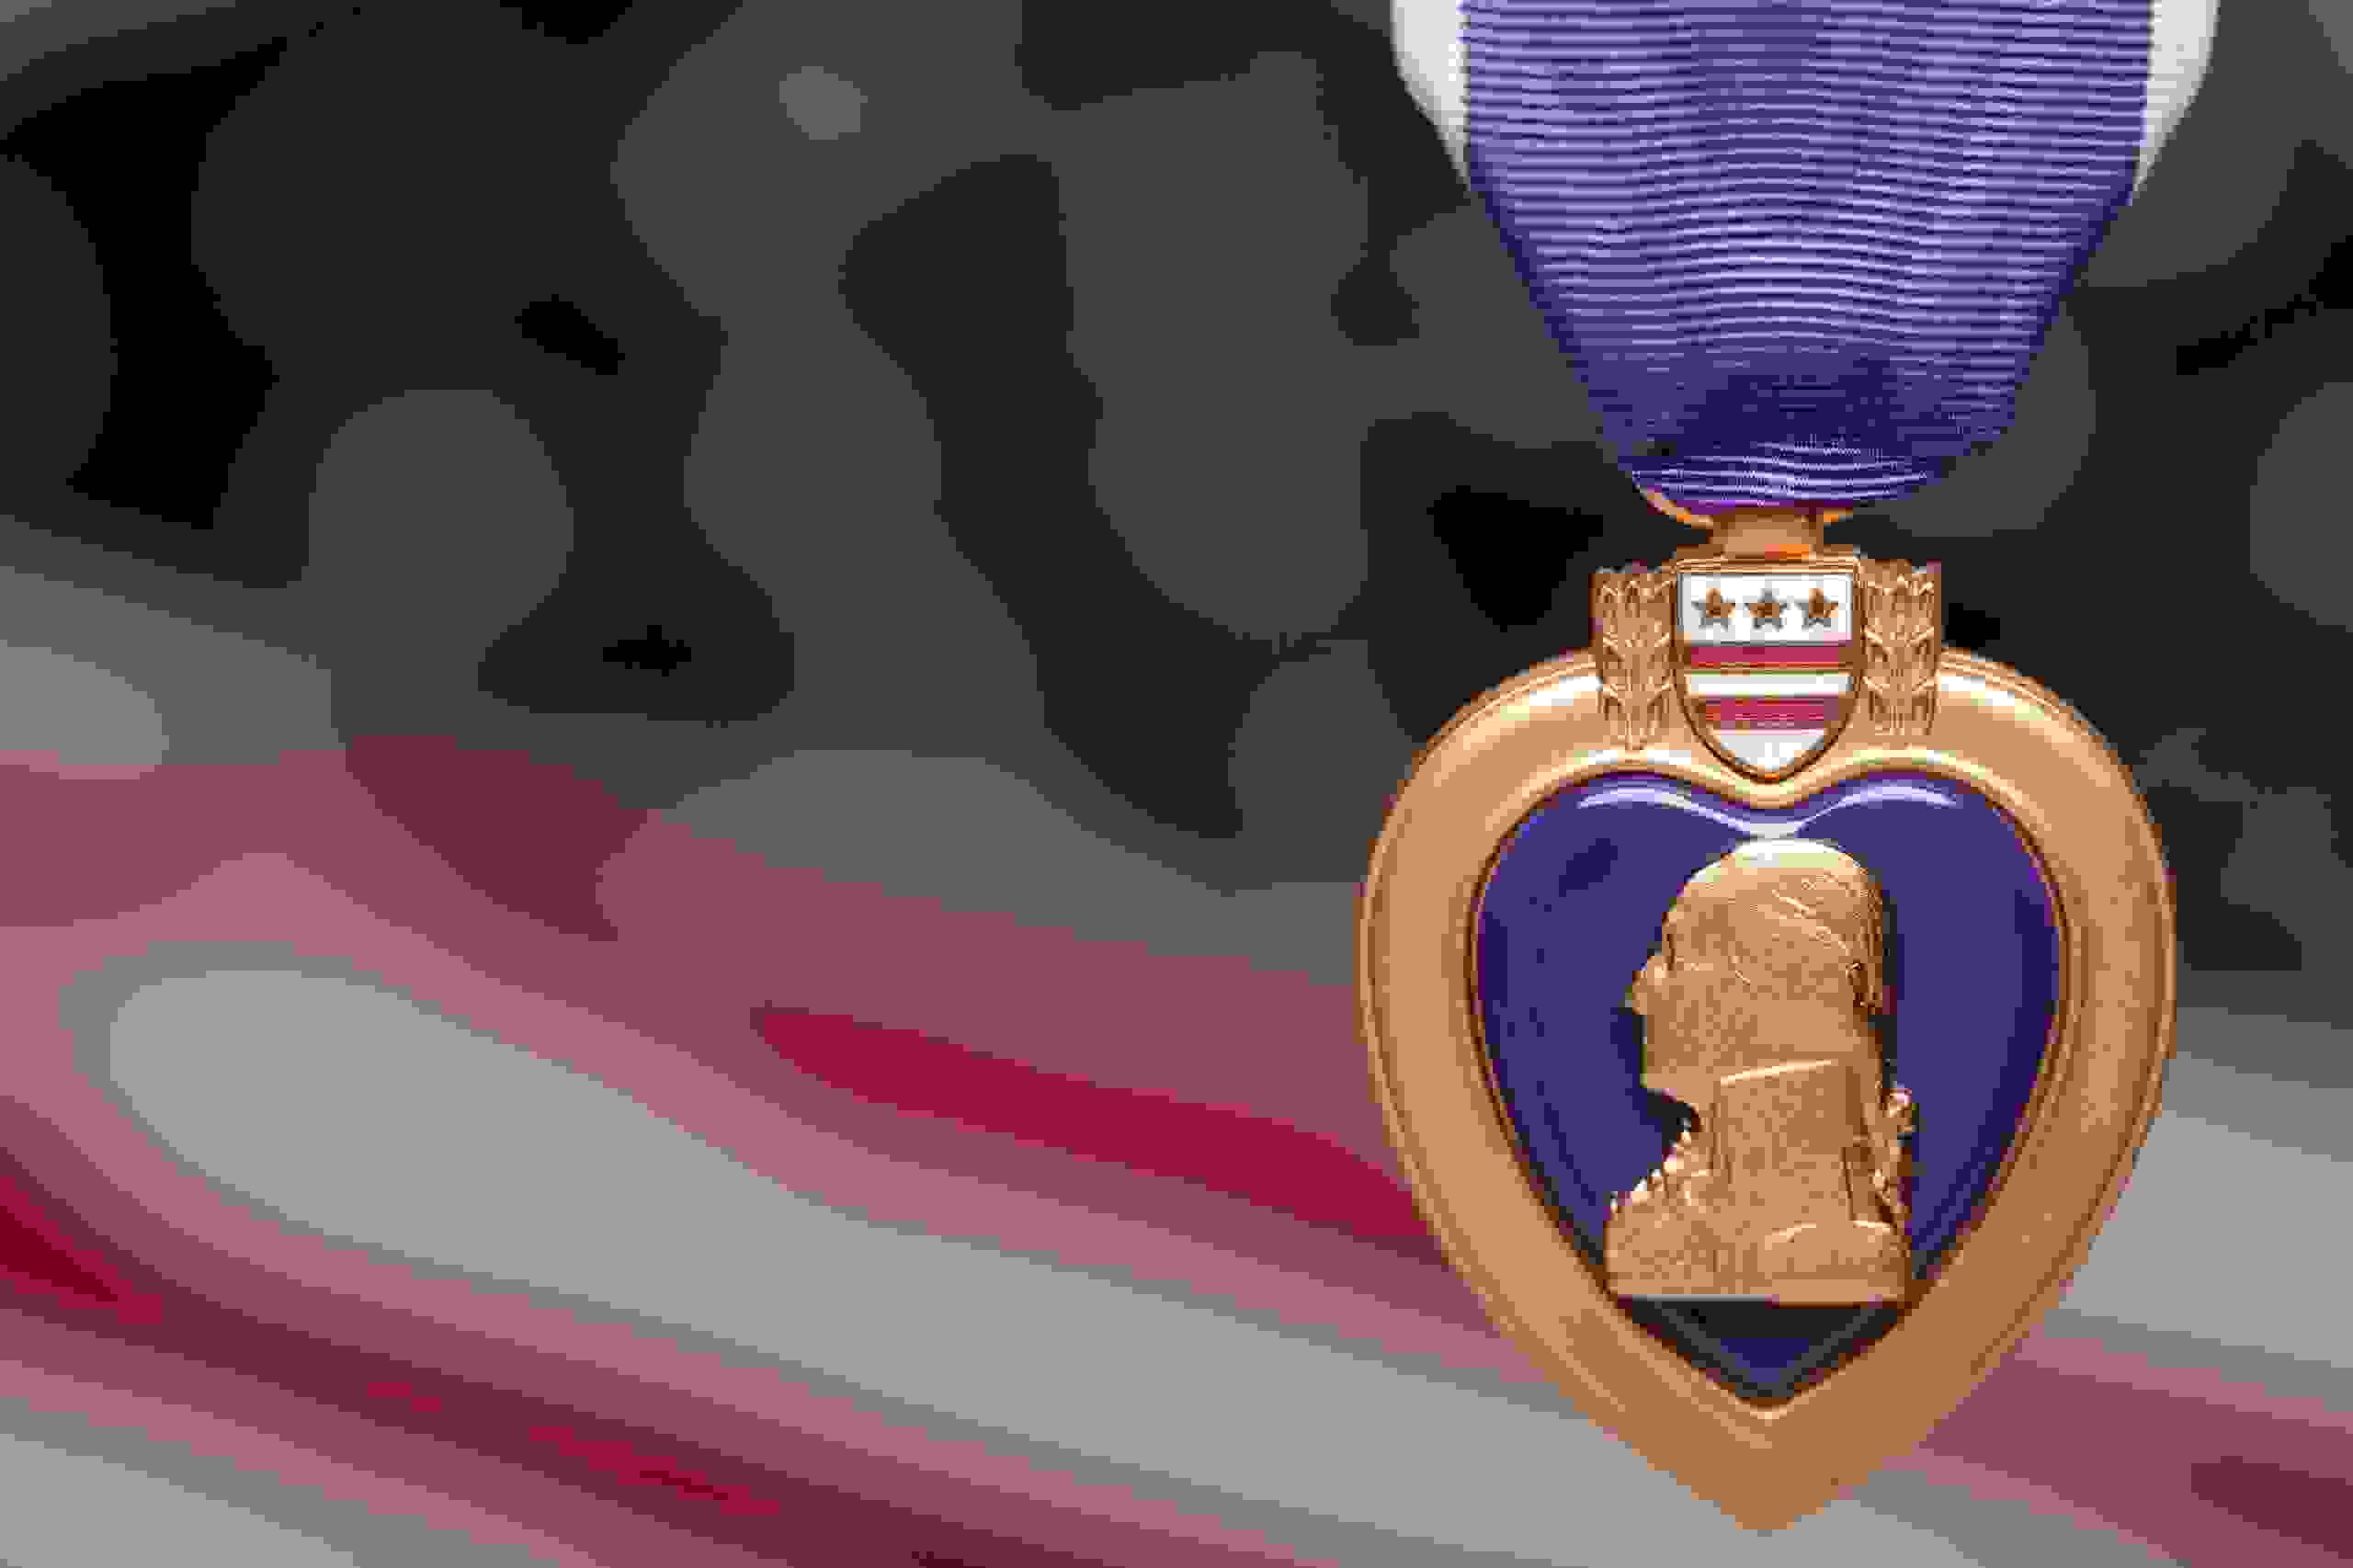 Purple Heart metal, American flag in background